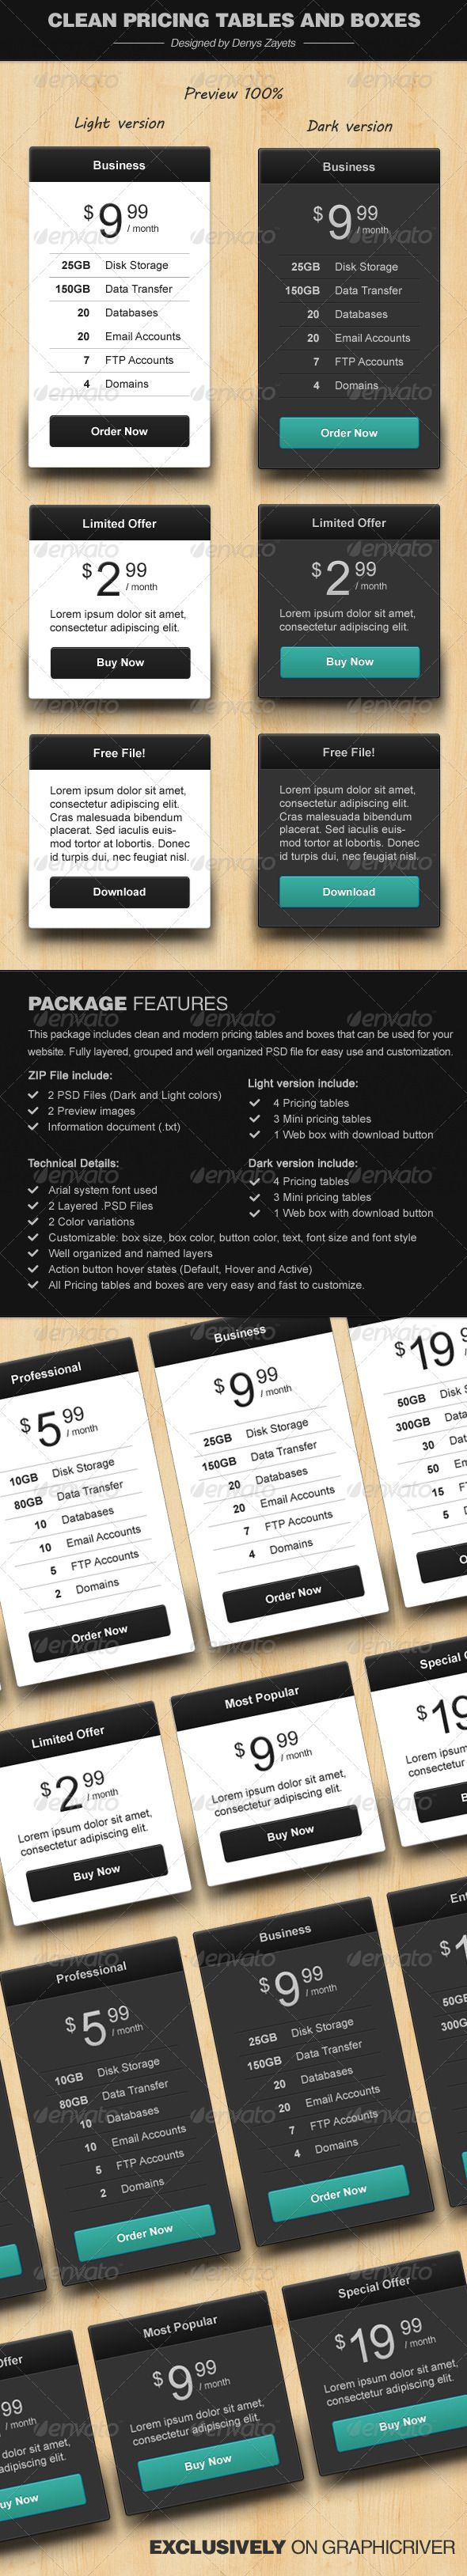 Clean Pricing Tables and Boxes  http://graphicriver.net/item/clean-pricing-tables-and-boxes/3722138?ref=rasko